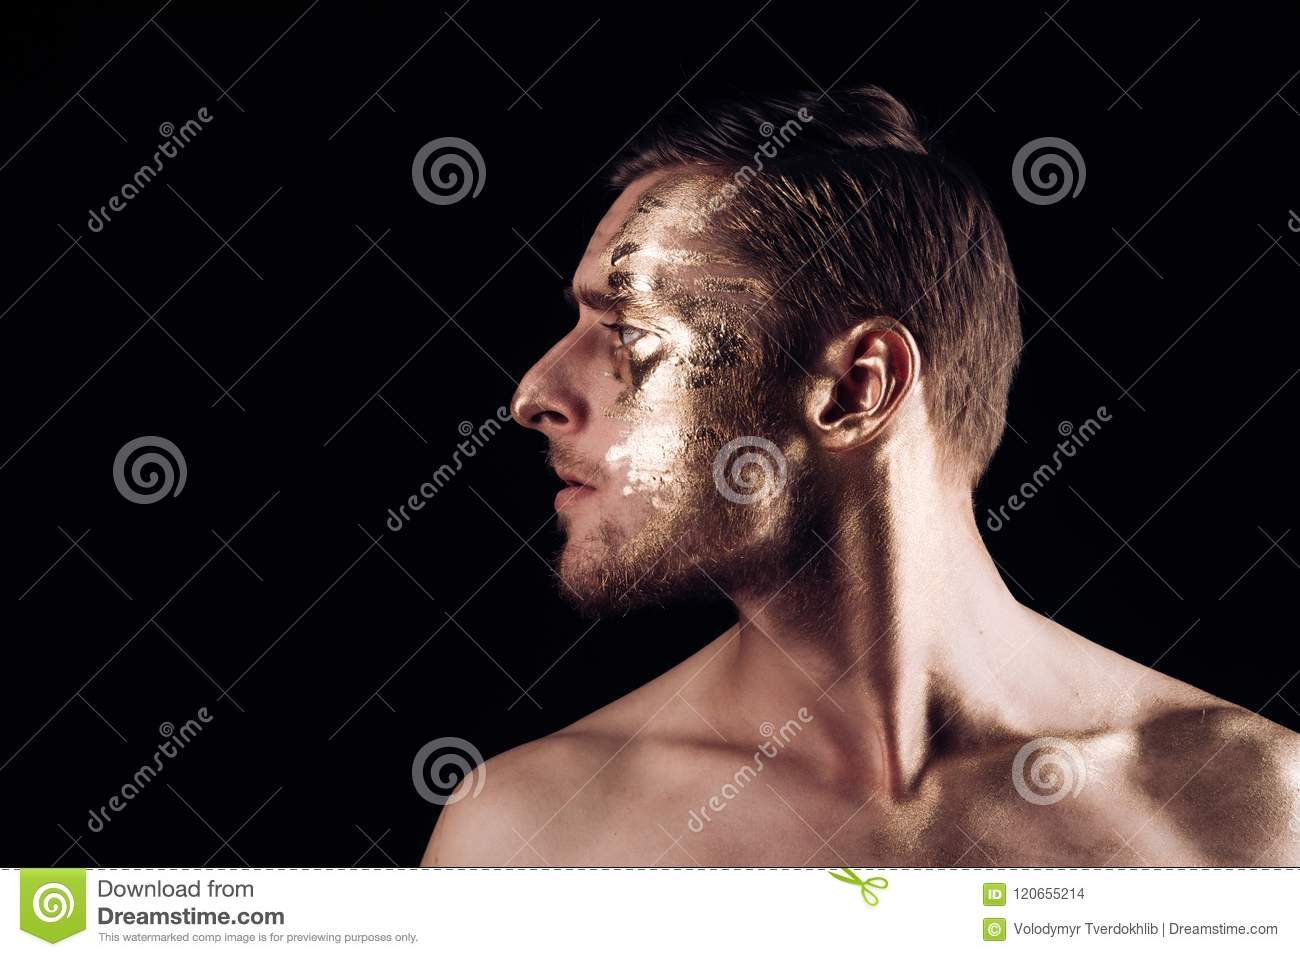 Body Art Paint With Gold On Face Of Man Man Has Golden Body Art Body Art Concept Luxury Body Art On Face Of Man Stock Photo Image Of Color Flush 120655214